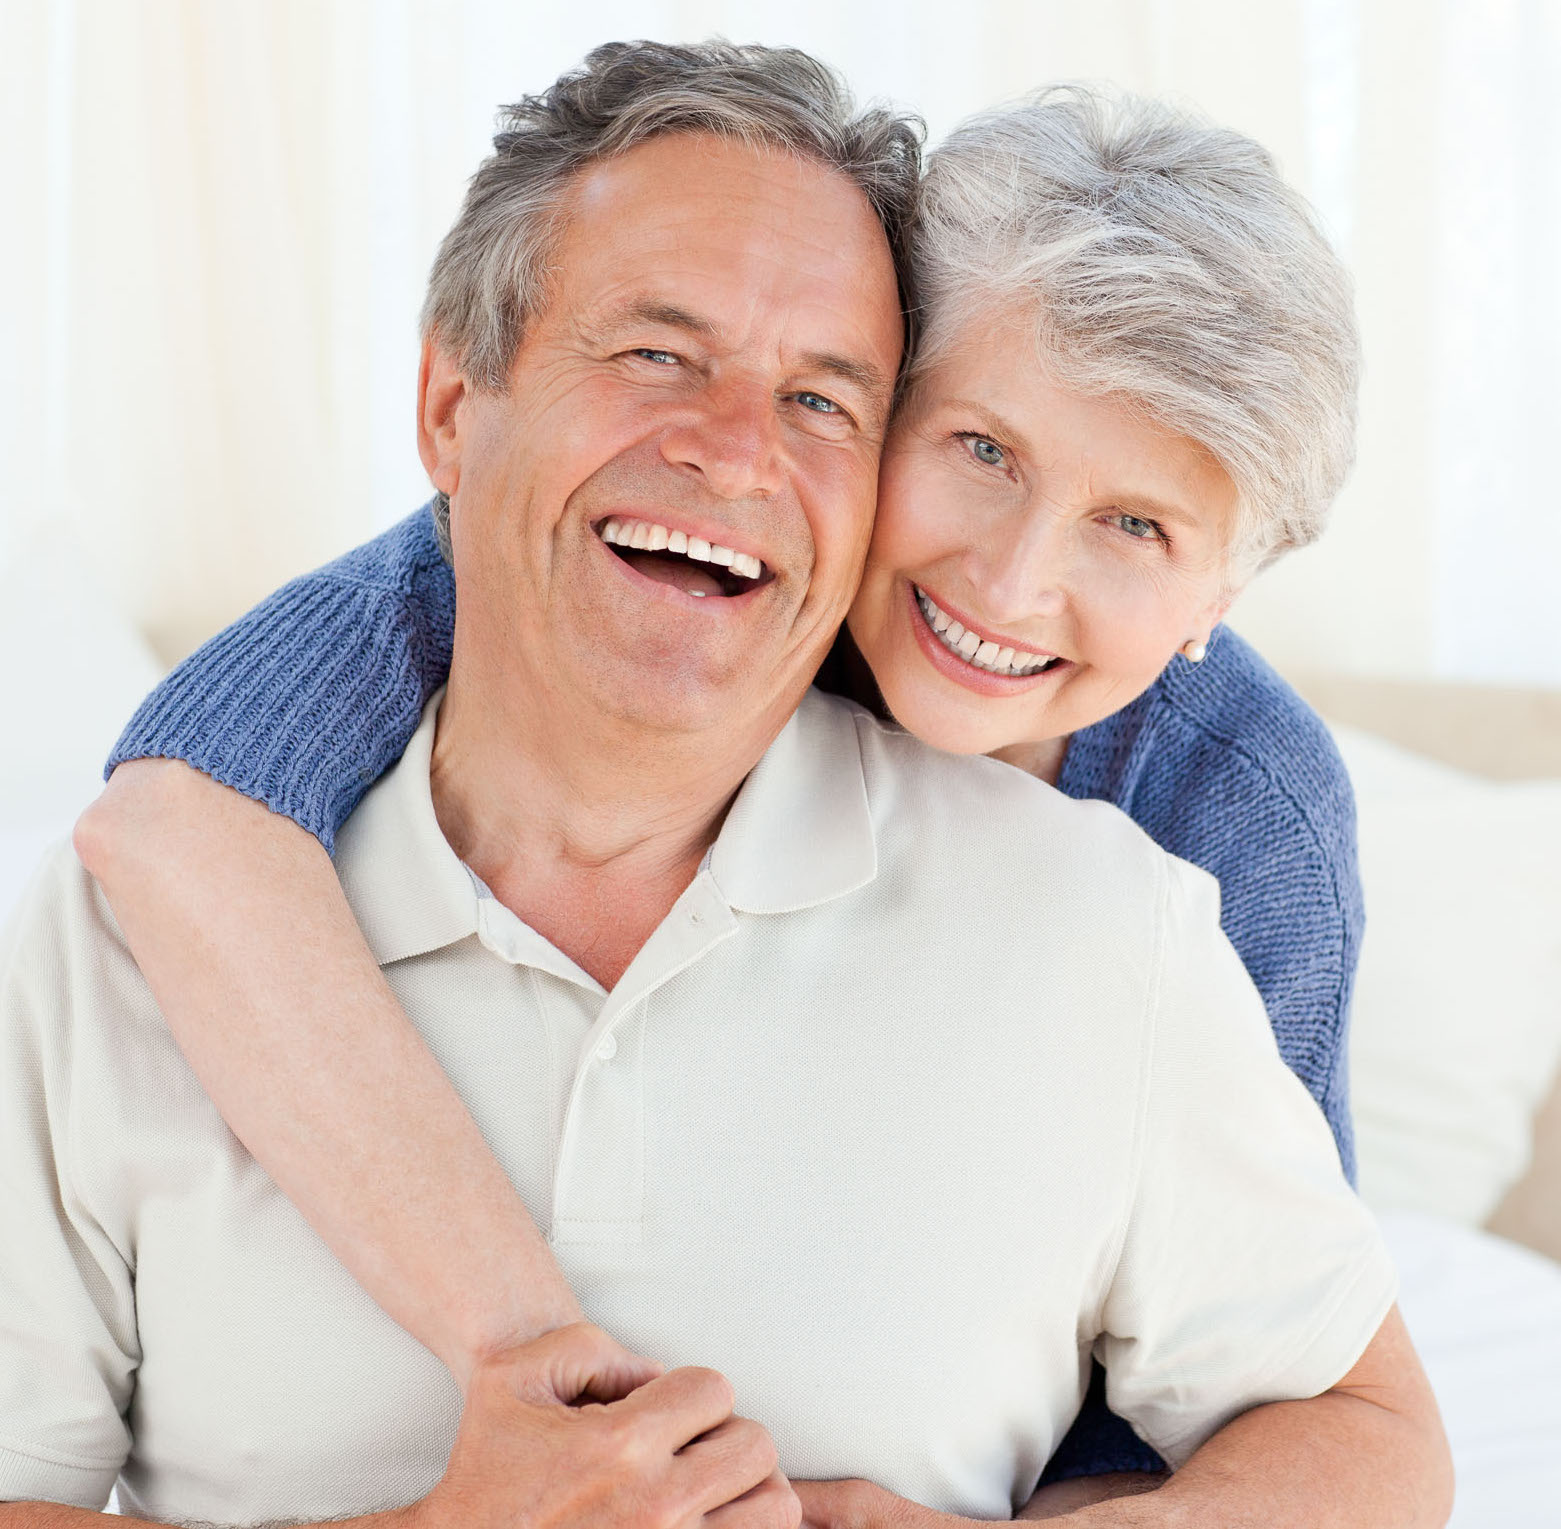 adult couple healthy and smiling at smiletowin.com Zurich